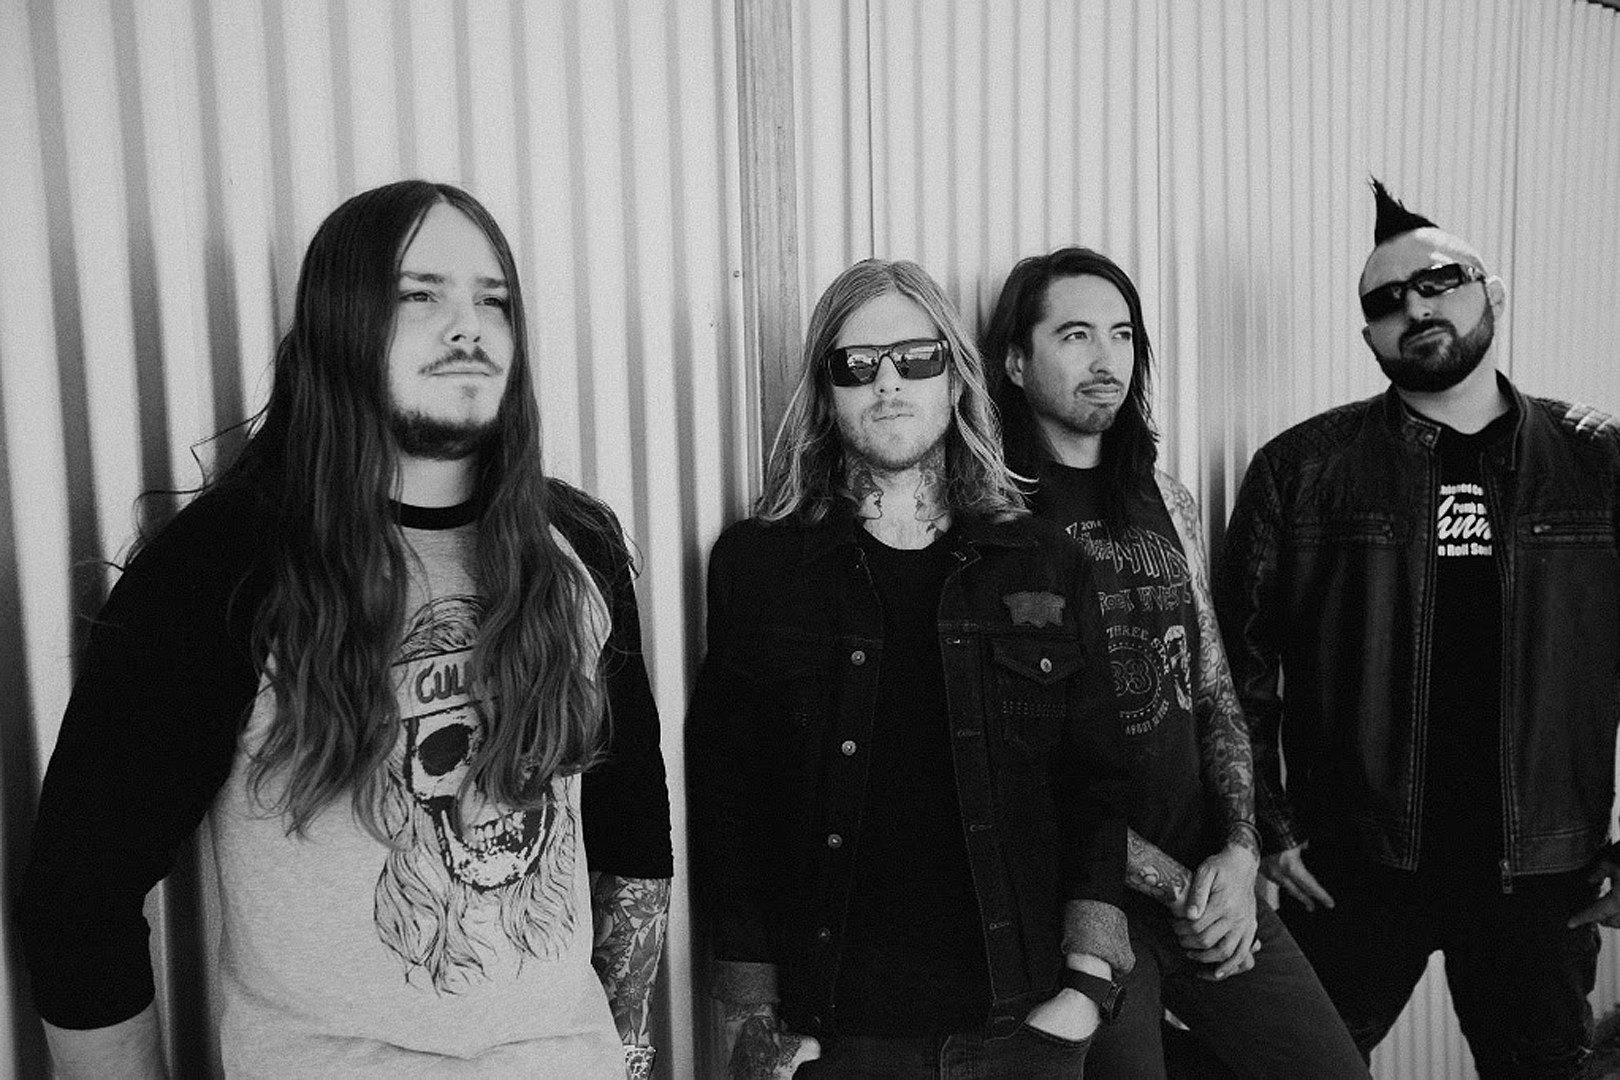 Of Mice and Men Working on 'Heavier' New Album With Lamb of God Producer